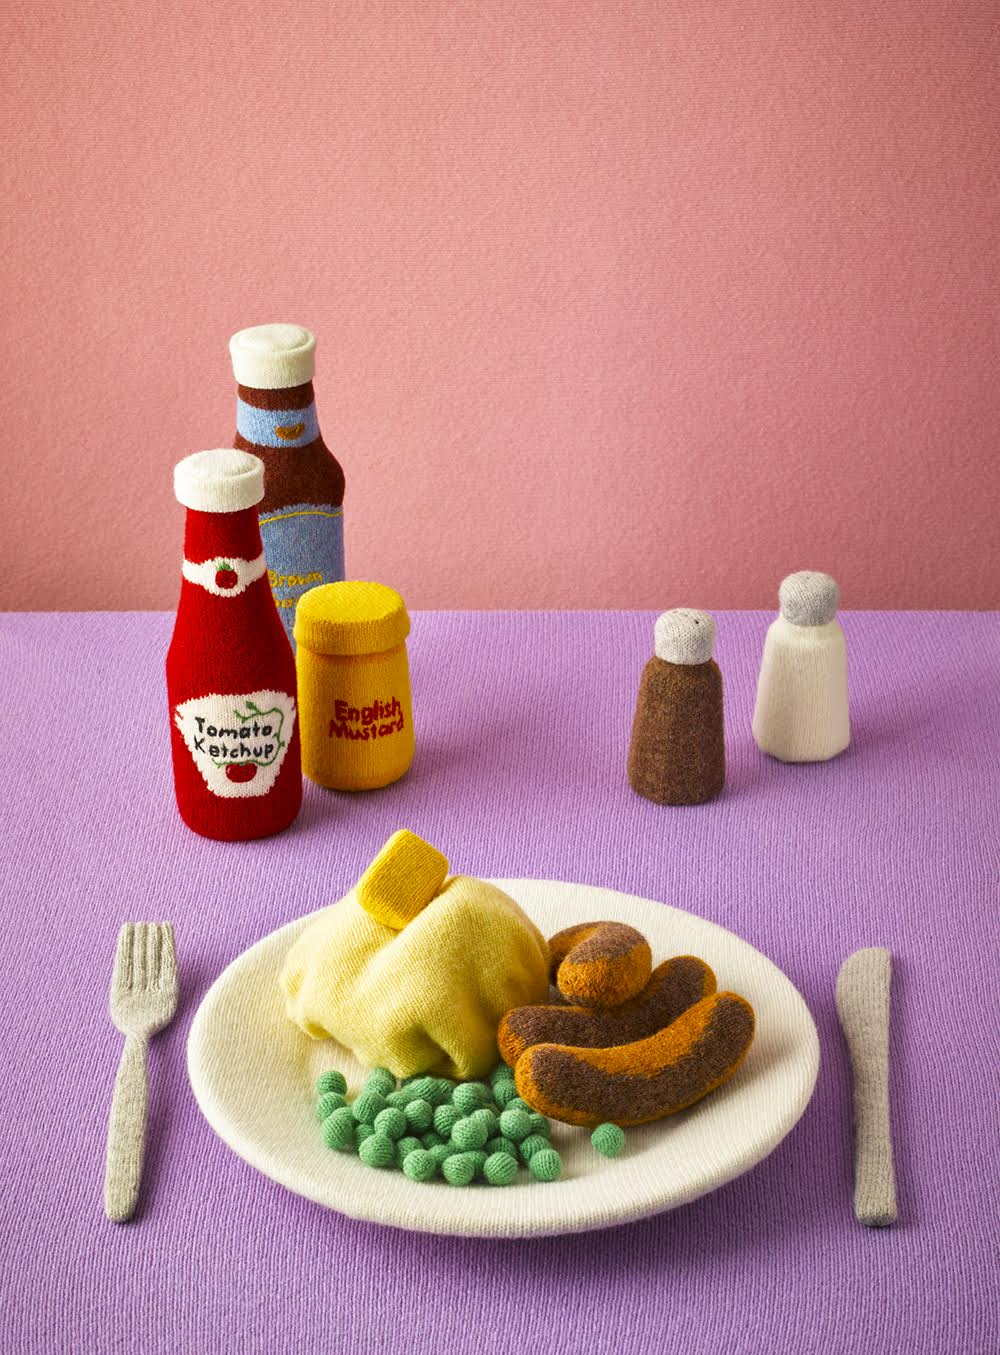 Knit Wool Meals and Edibles by Jessica Dance Look Good Enough to Eat